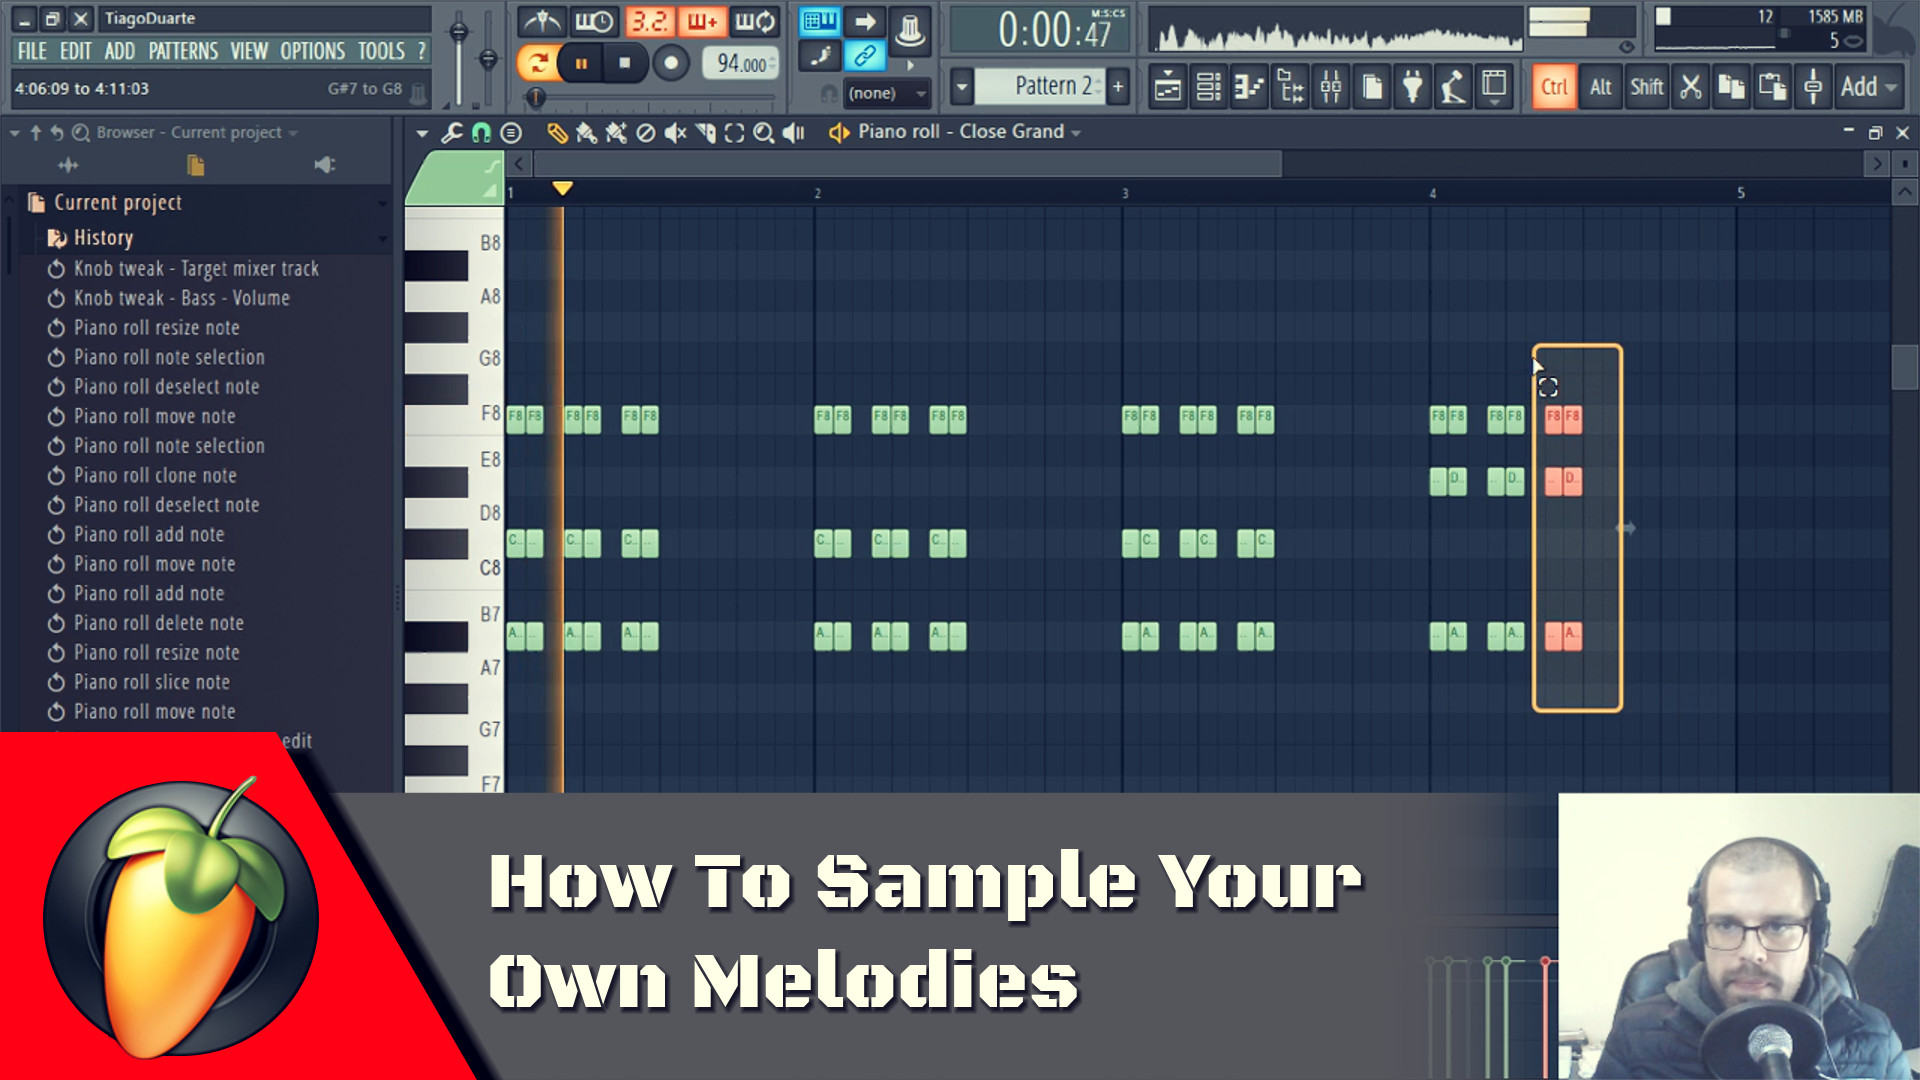 How To Sample Your Own Melodies